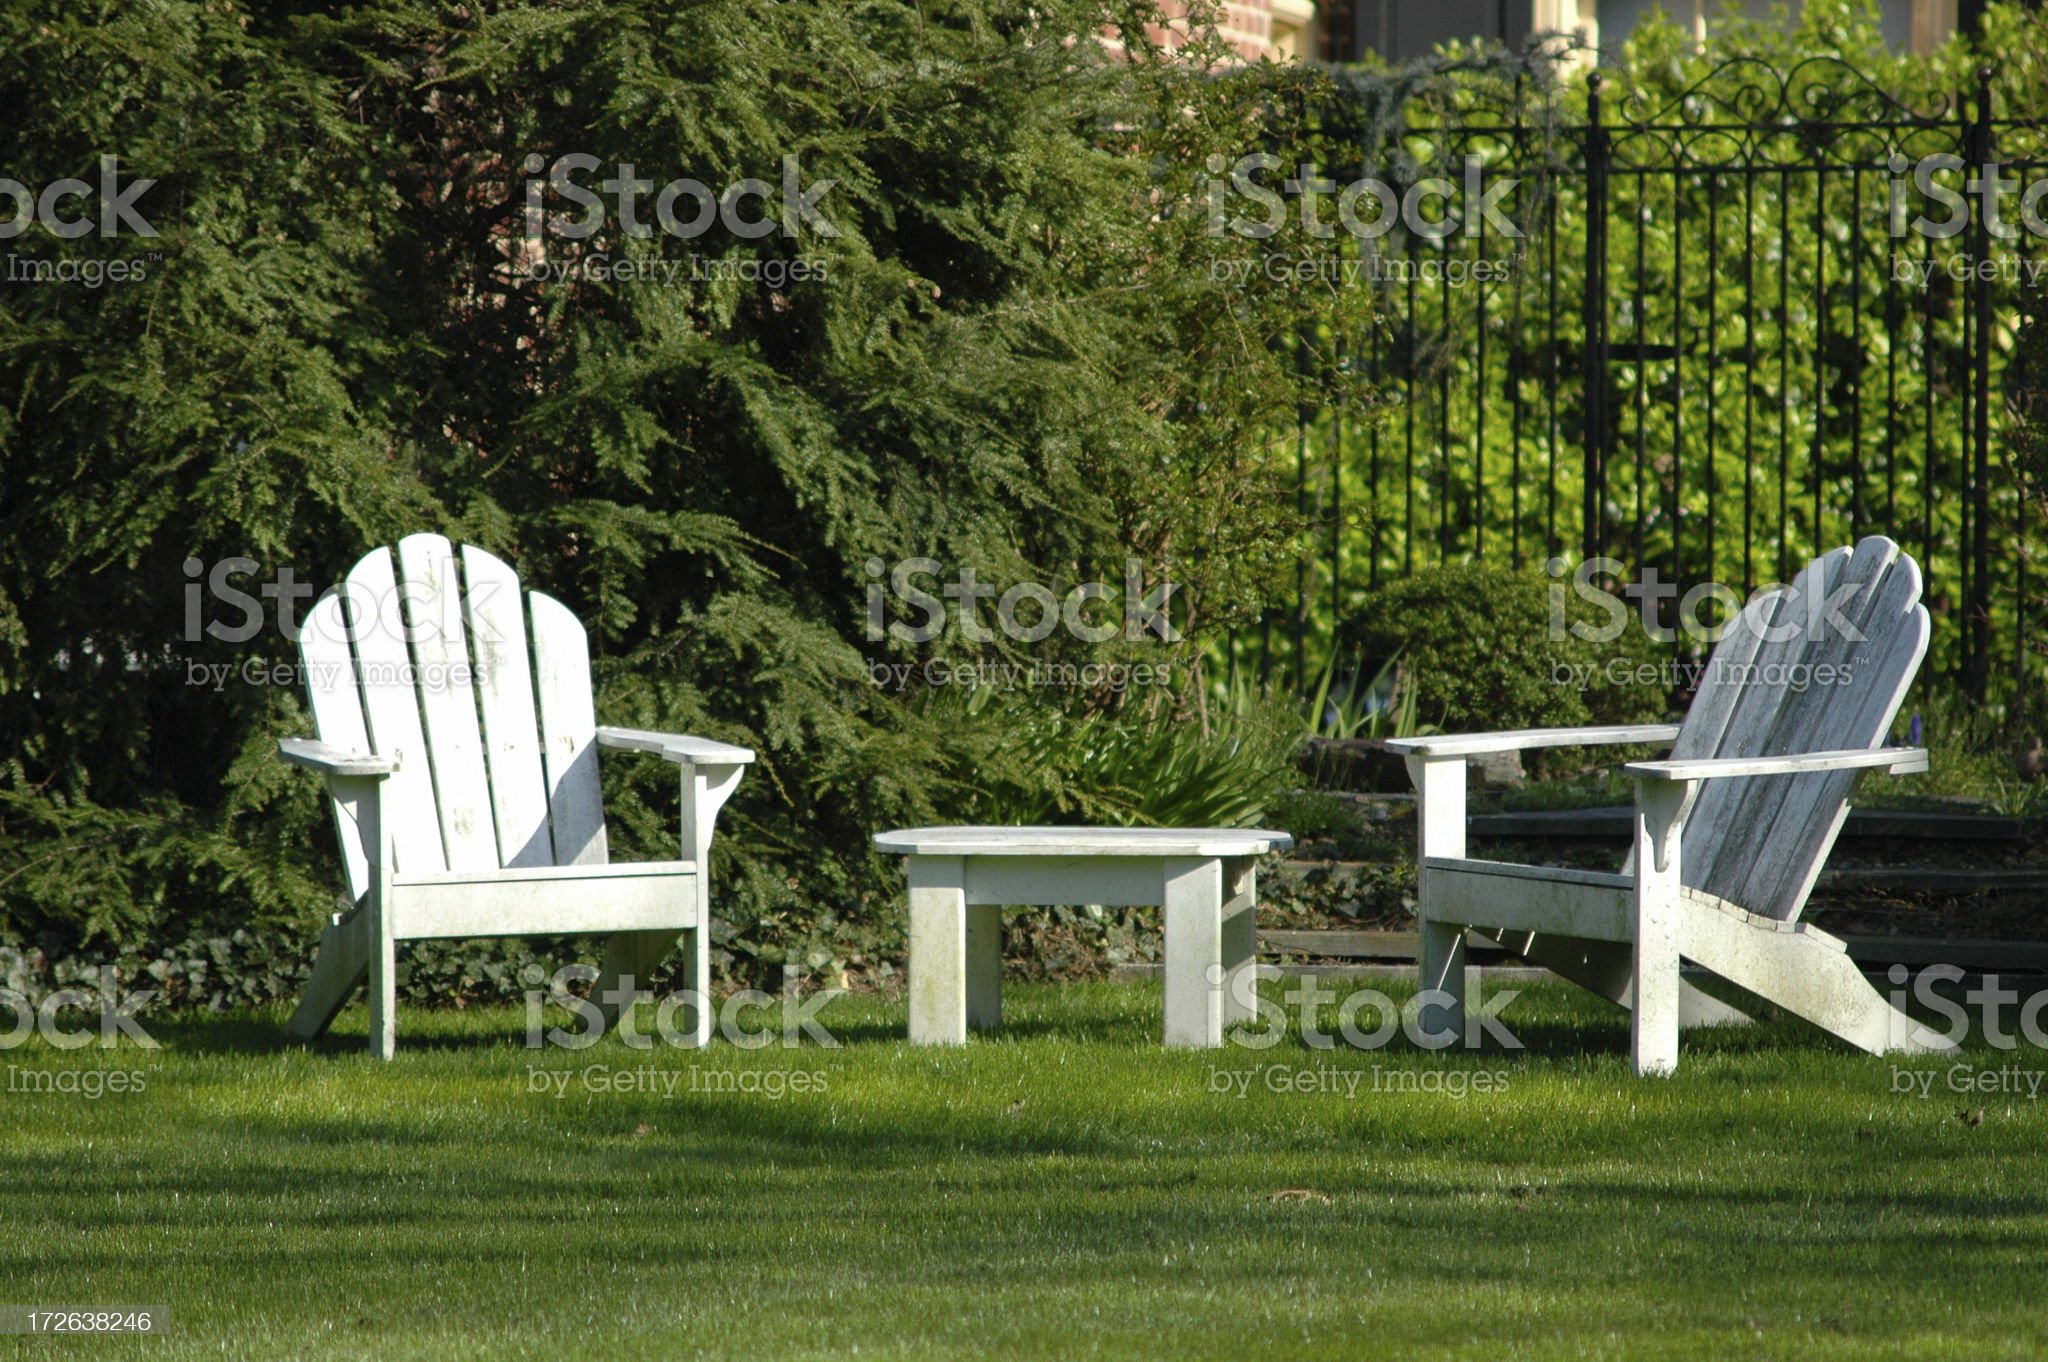 Green Lawn, White Chairs royalty-free stock photo